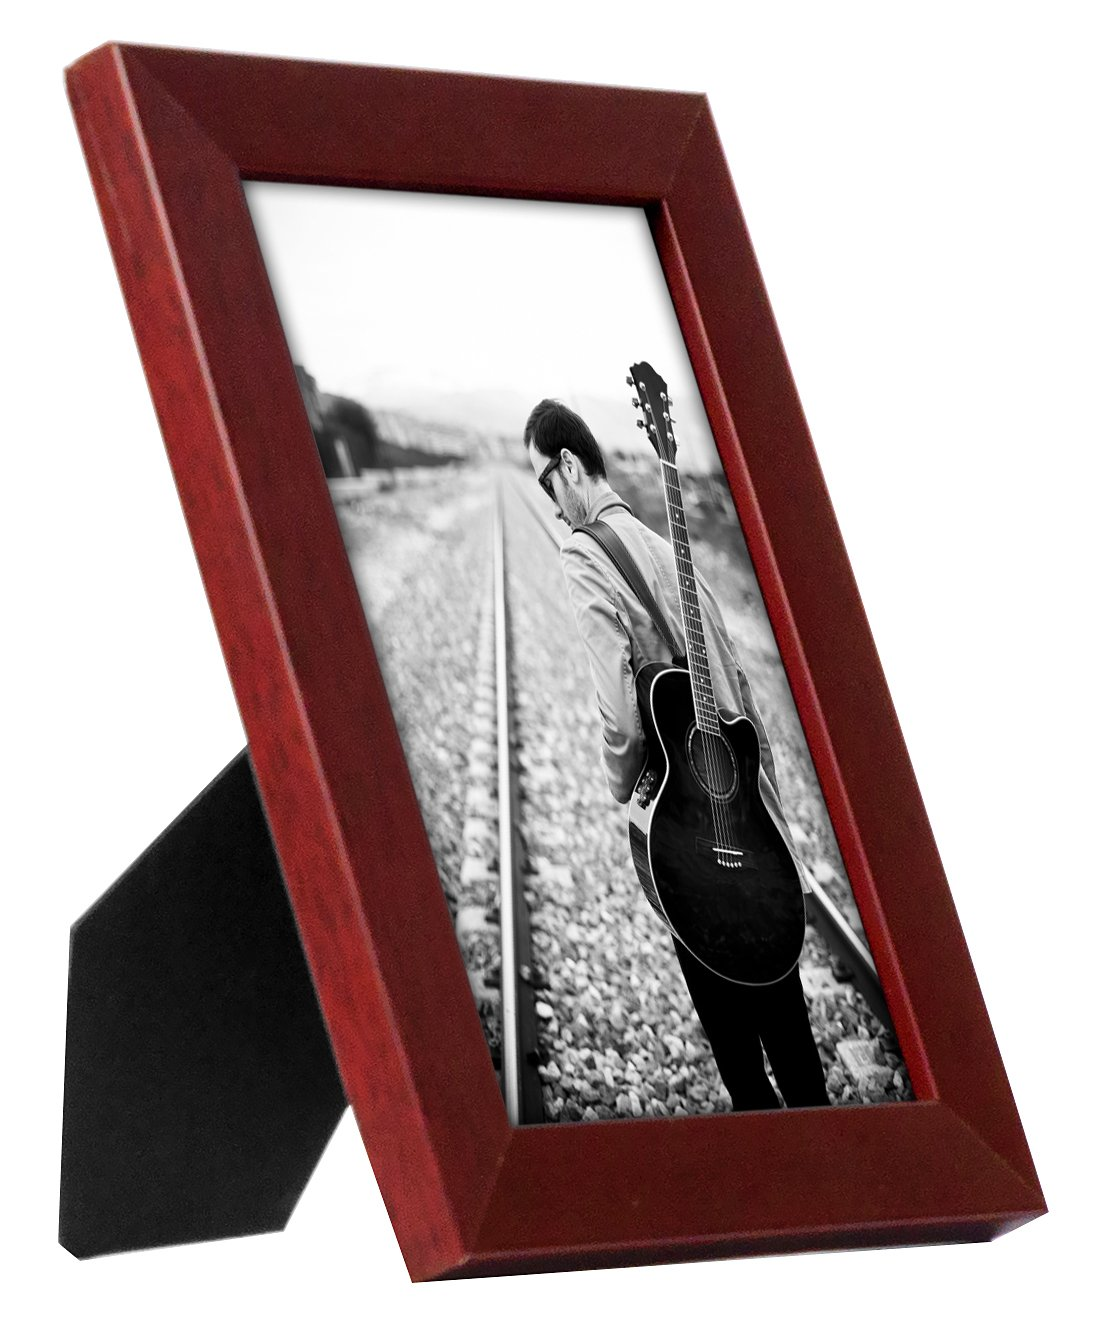 Americanflat 5x7 Mahogany Picture Frame - Easel Stand - Tabletop Display - Wall Display -  - picture-frames, bedroom-decor, bedroom - 71D1VwyKiXL -